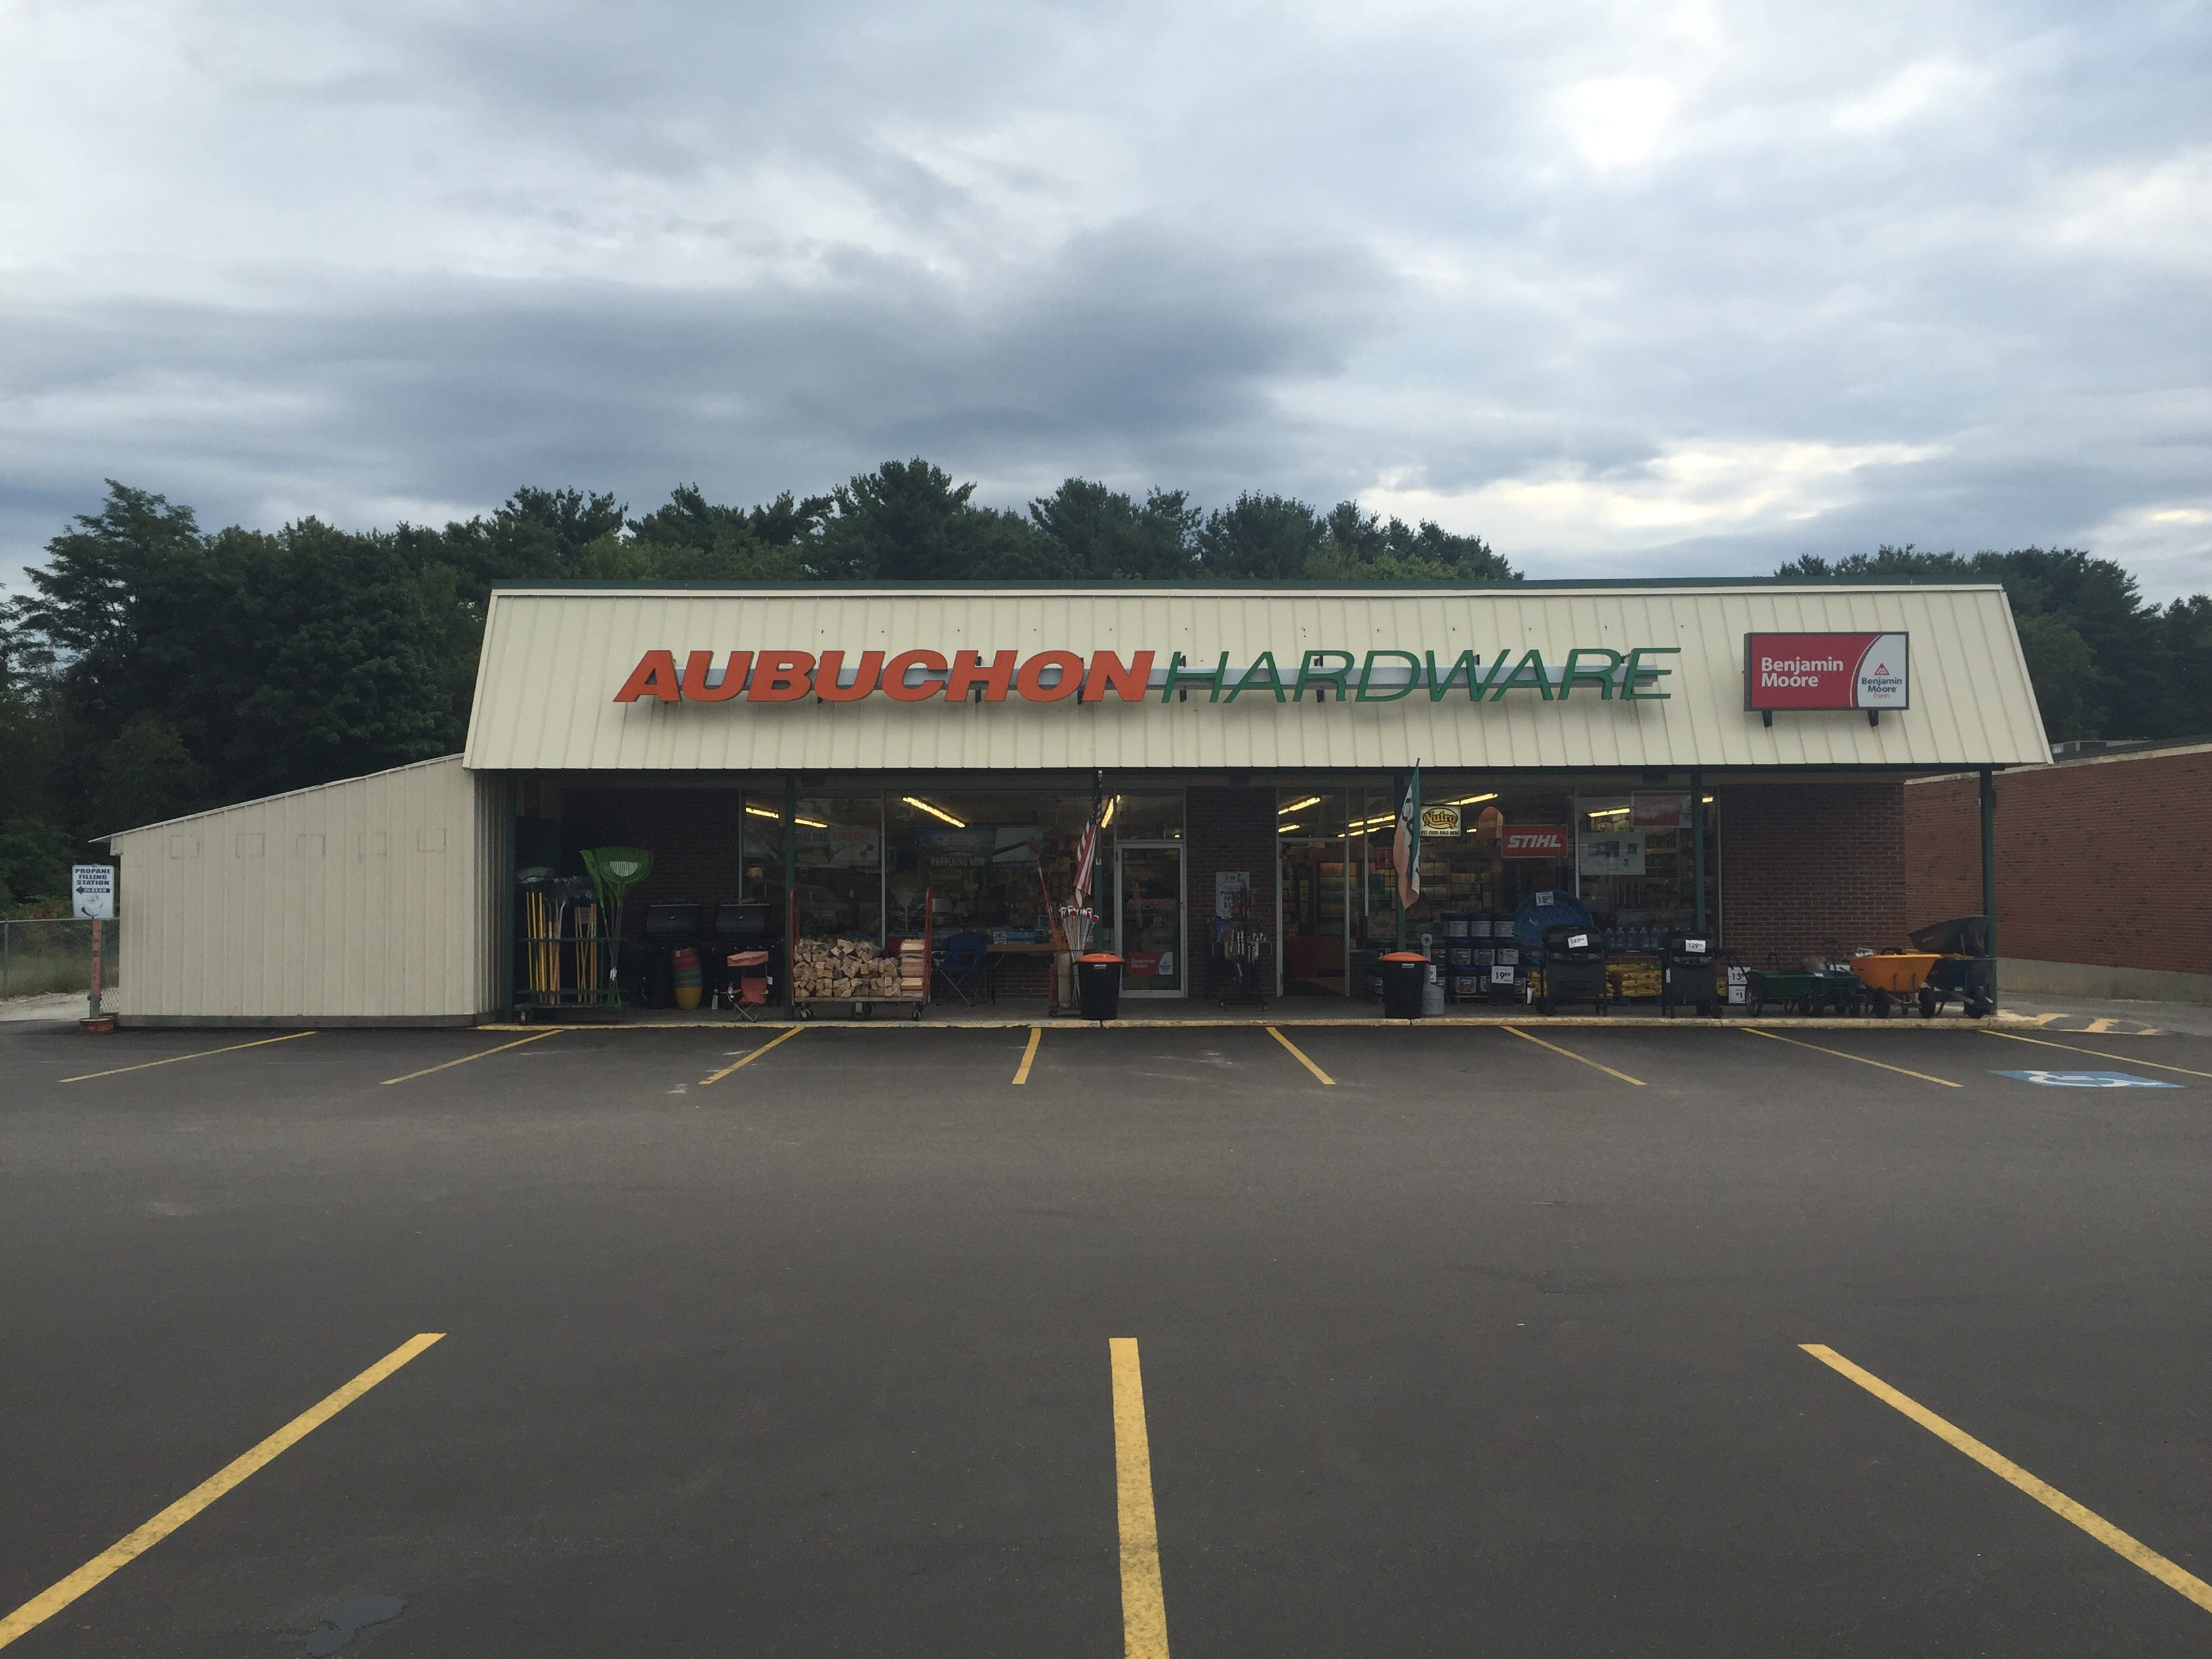 Aubuchon Hardware : 107 North Windham, ME